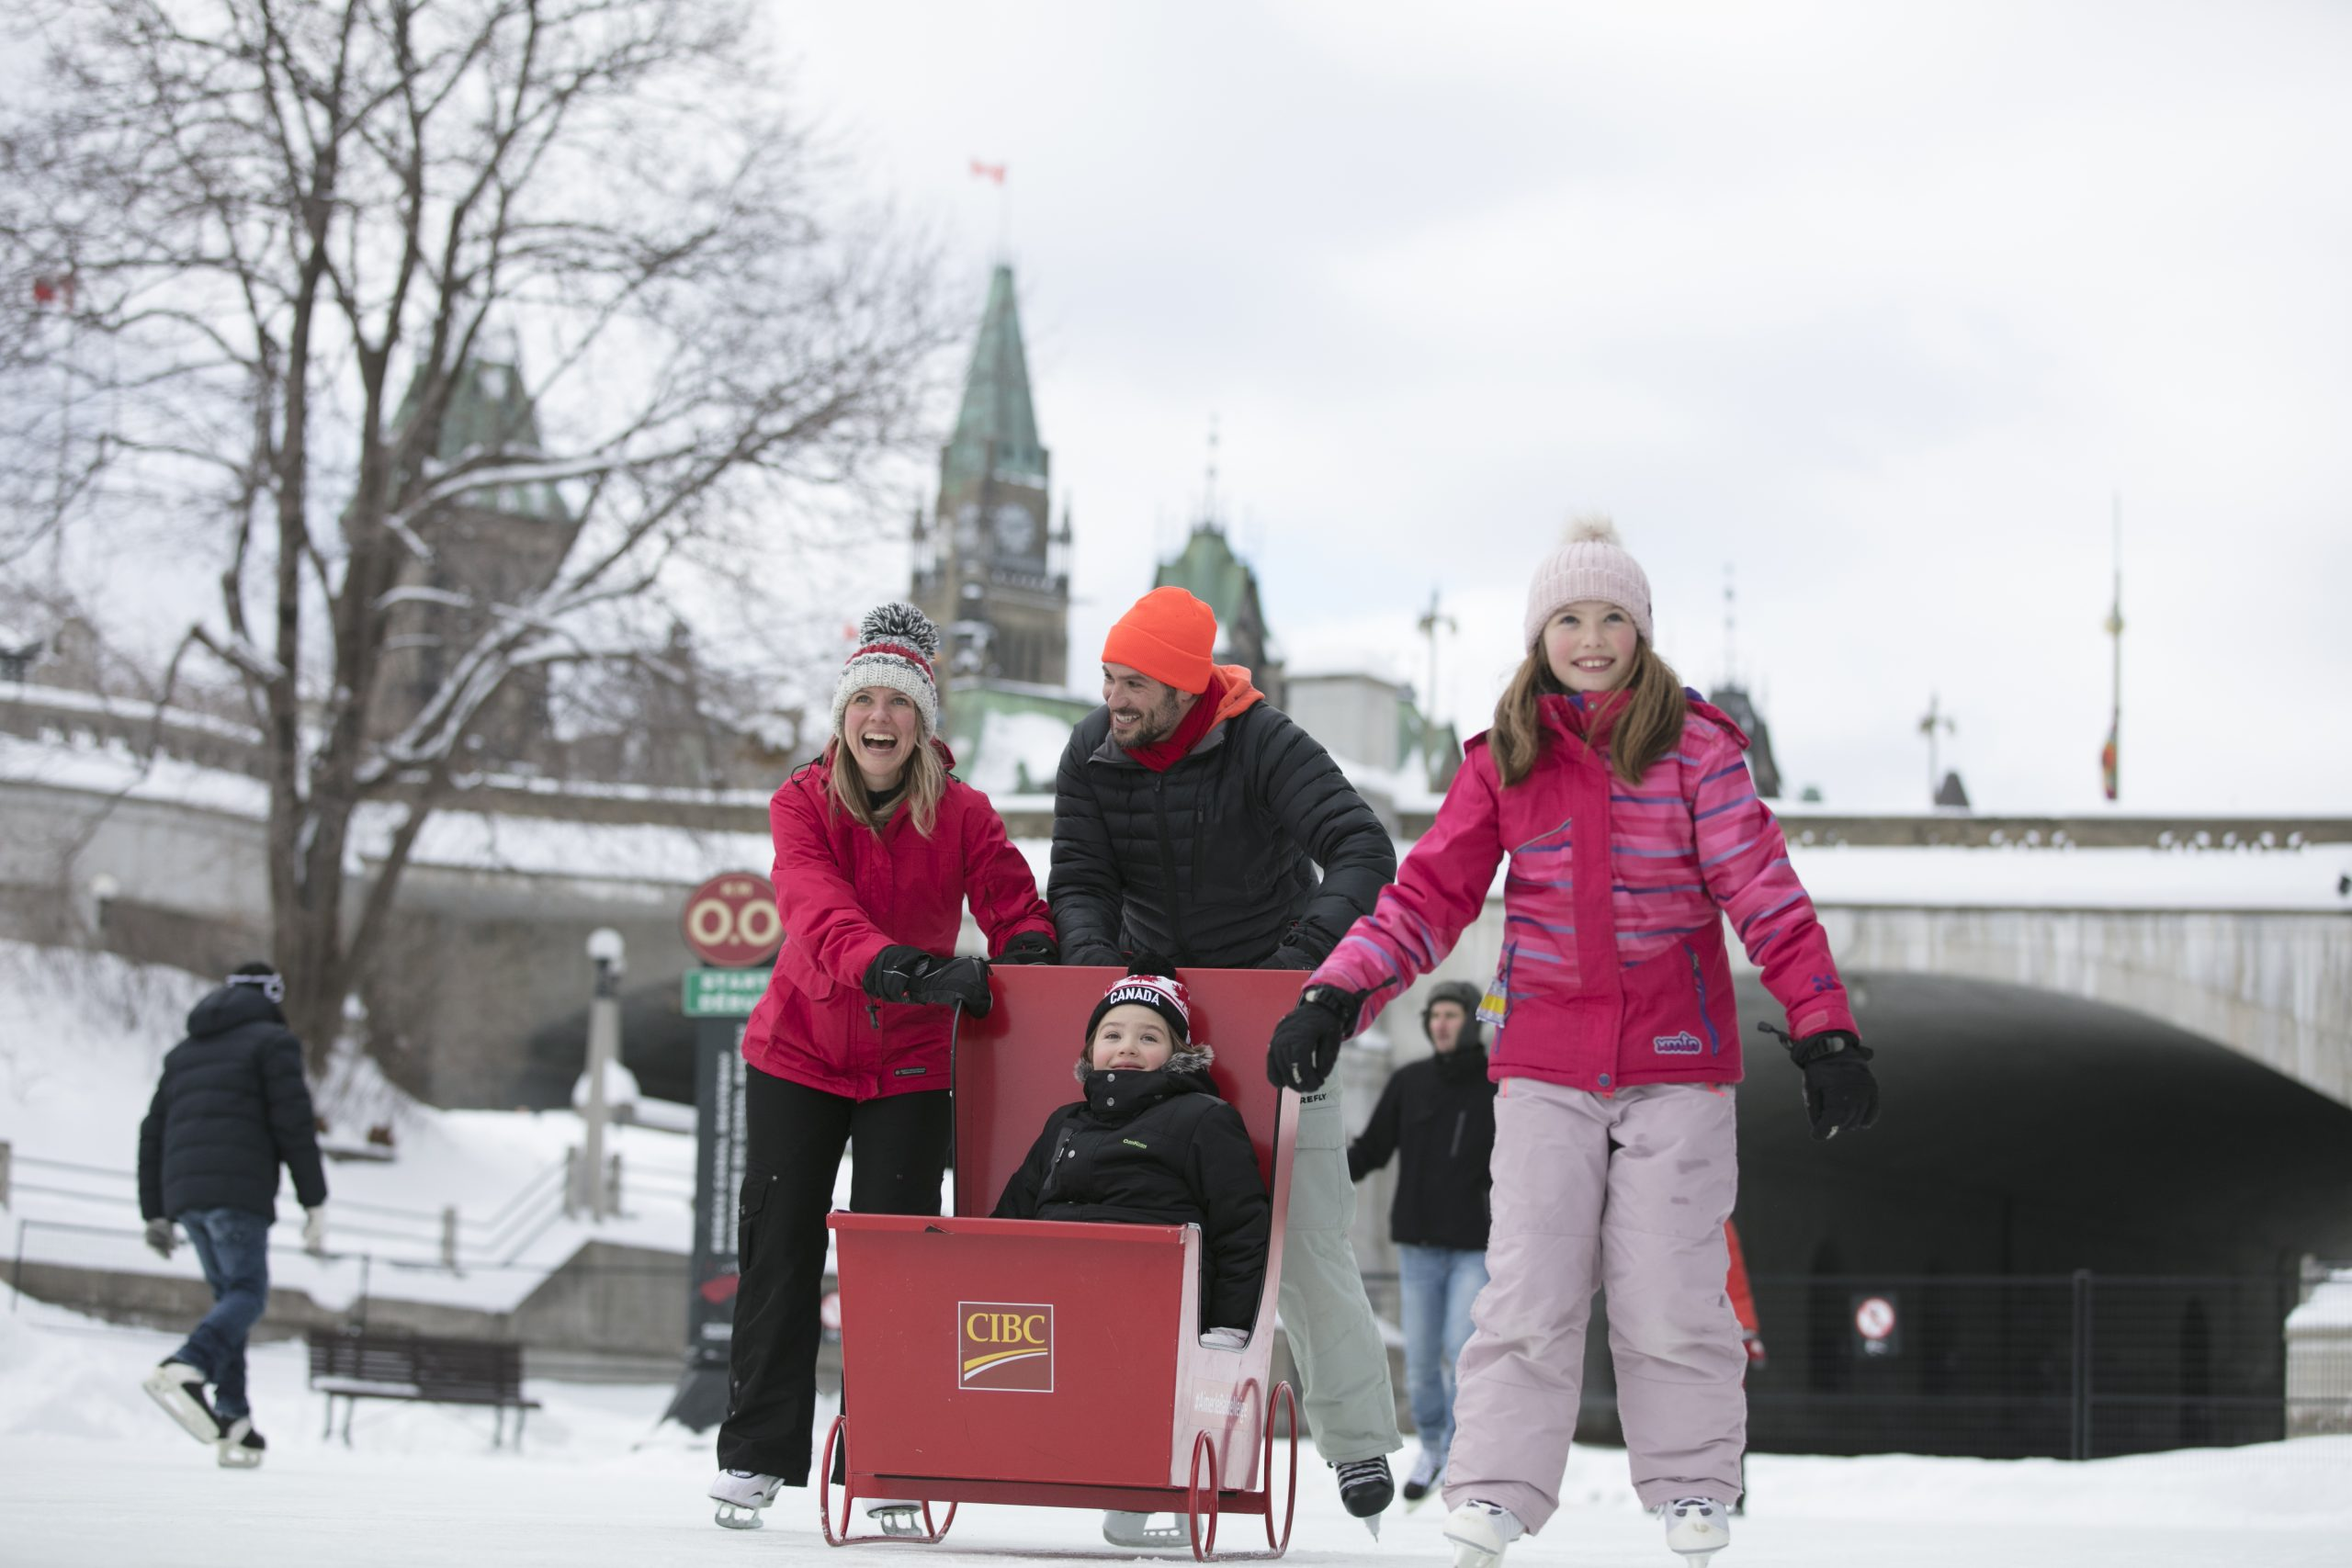 Fun and Safe Winter Activities to Do in Ottawa During COVID-19